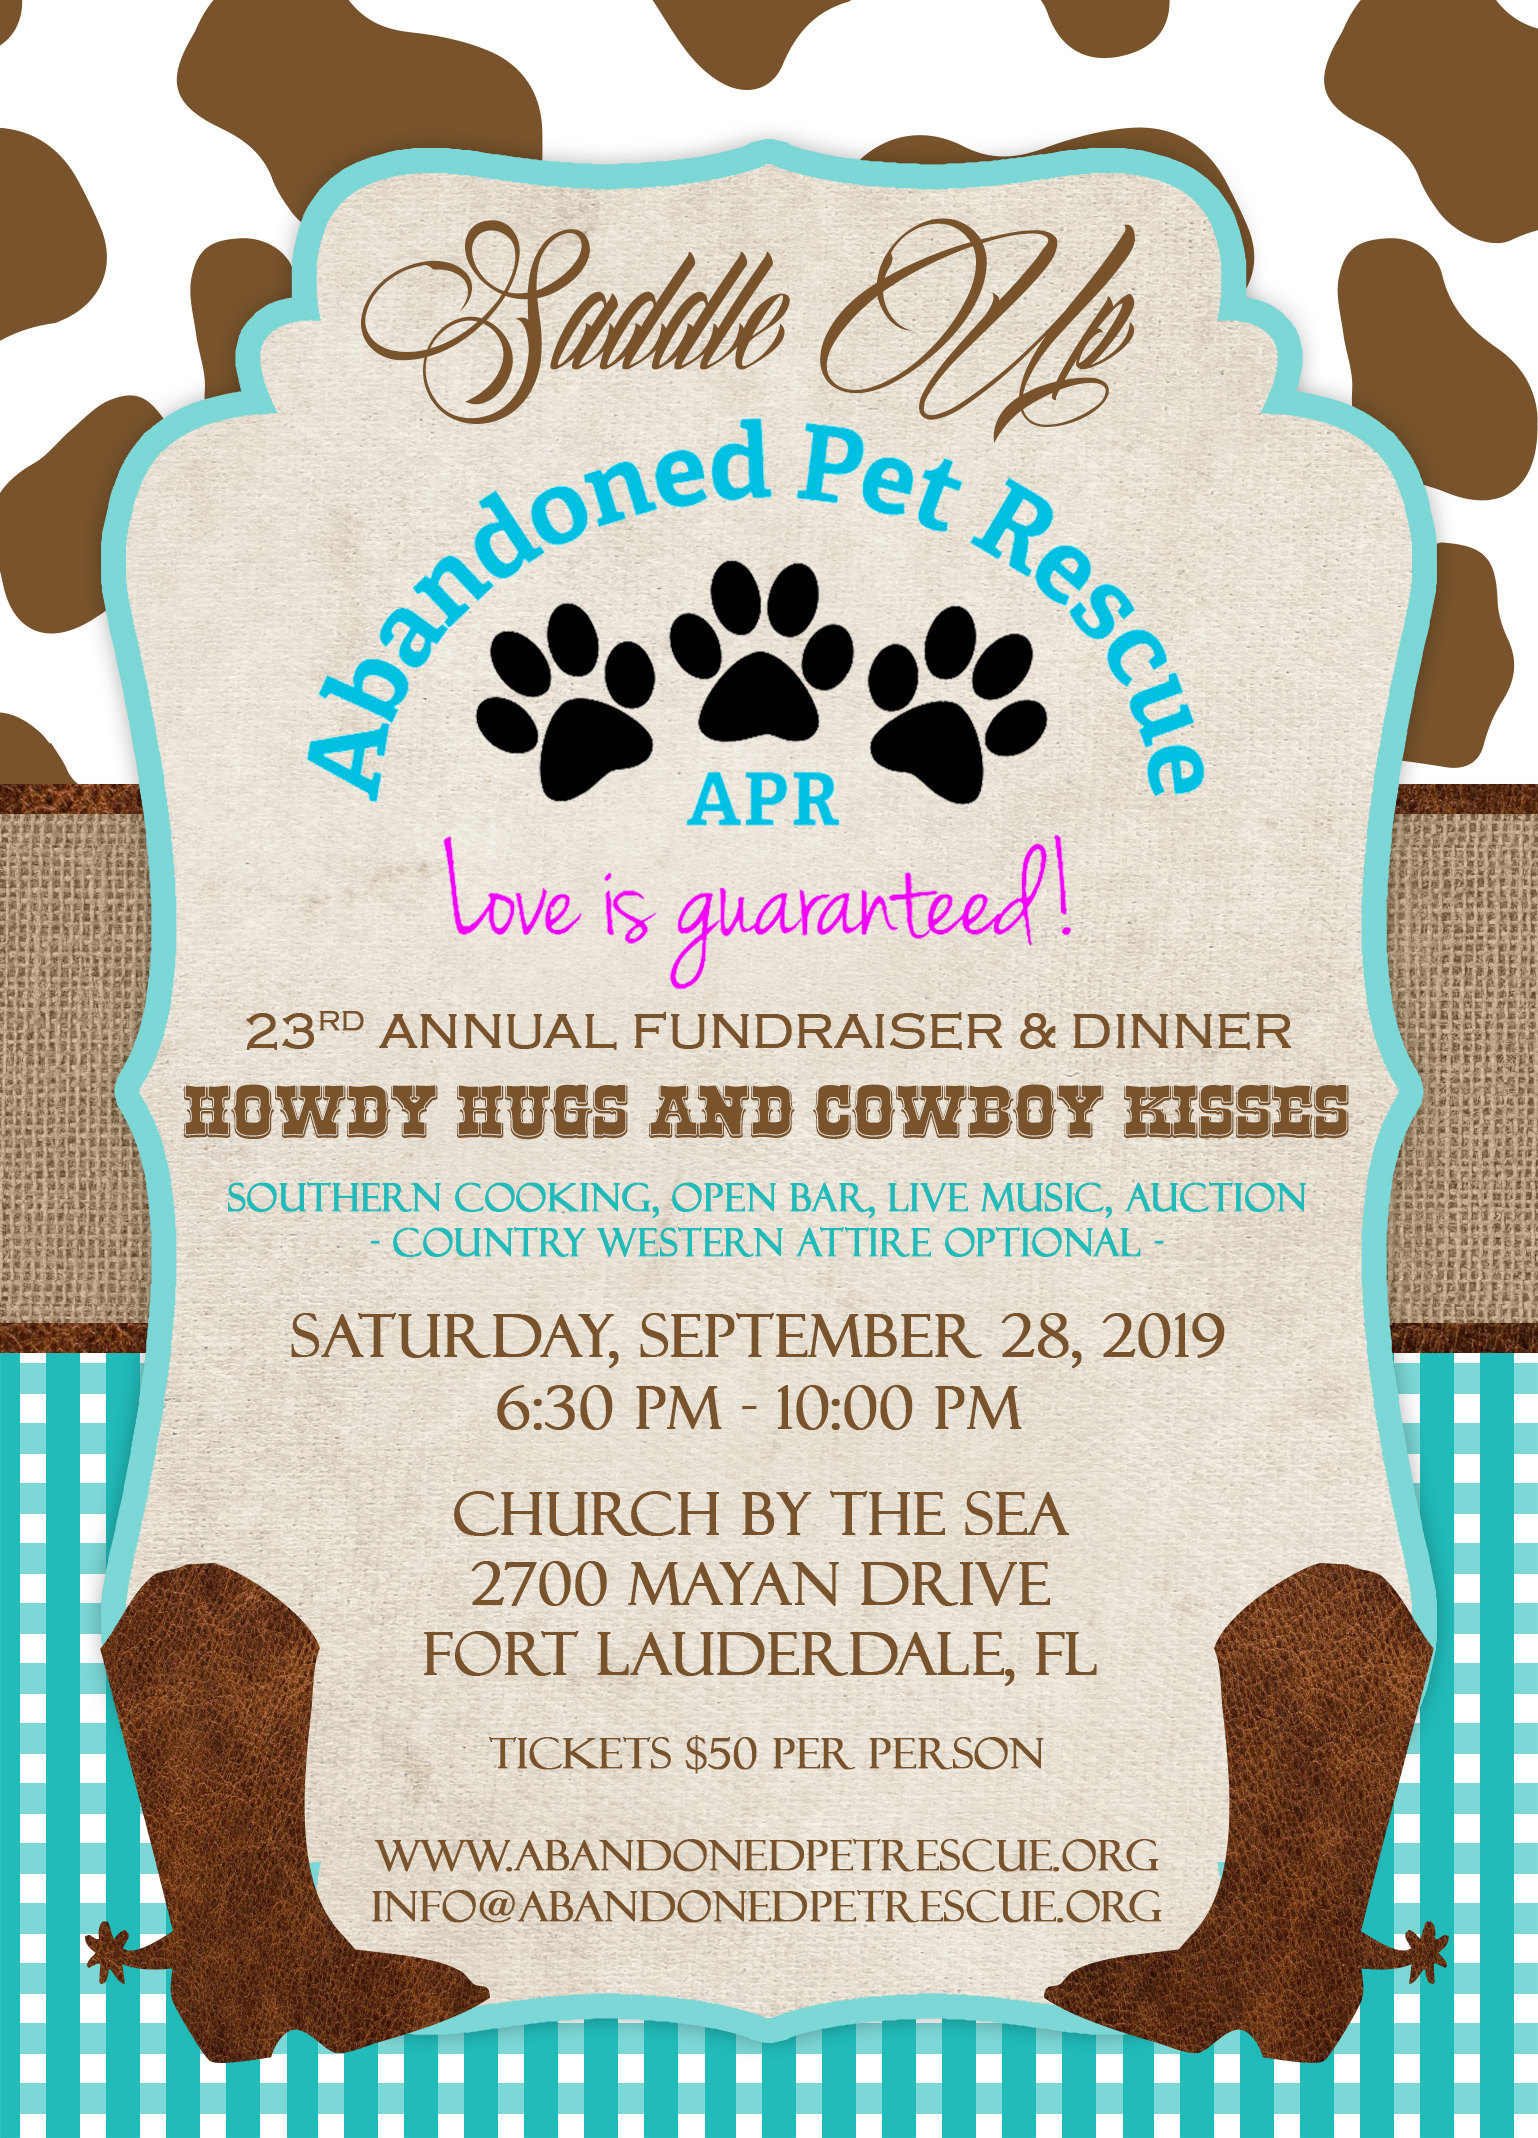 HOWDY HUGS & COWBOY KISSES (9/28/19) @ Church By The Sea | Fort Lauderdale | Florida | United States